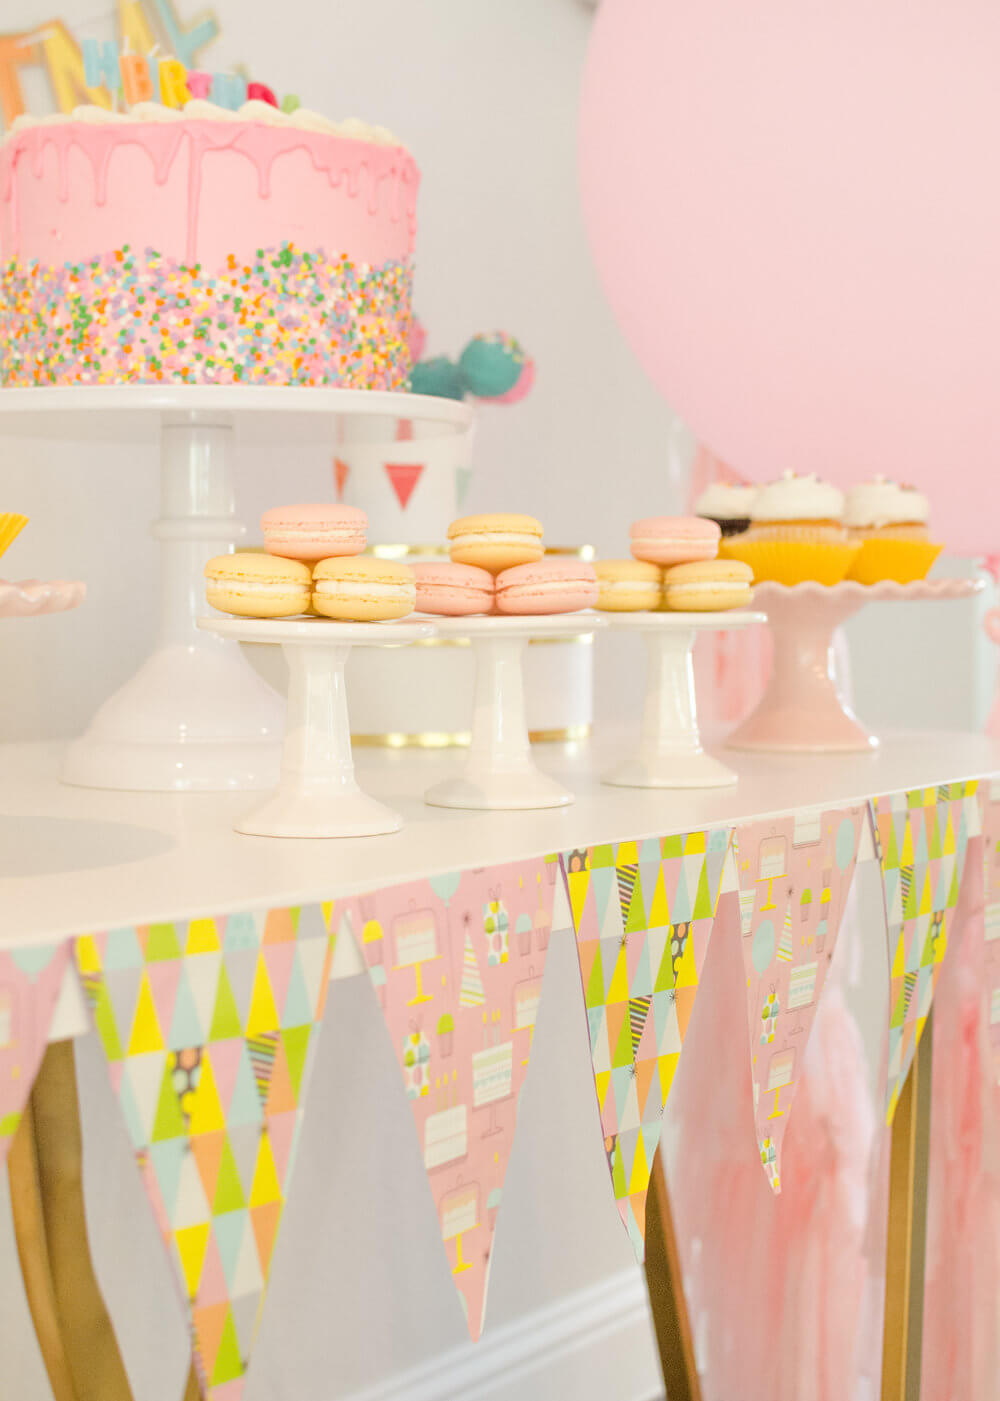 Decorate your party table with banners created from wrapping paper / Find out how to create the cutest birthday party banners with wrapping paper / See more birthday party ideas on the blog along with surprising ways to greet your guests at a Birthday Party / Styled by Carolina from MINT Event Design / www.minteventdesign.com #birthdayparty #partyideas #partyinspiration #partydessert #birthdaybanner #partydecor #partybanners #partydecorations